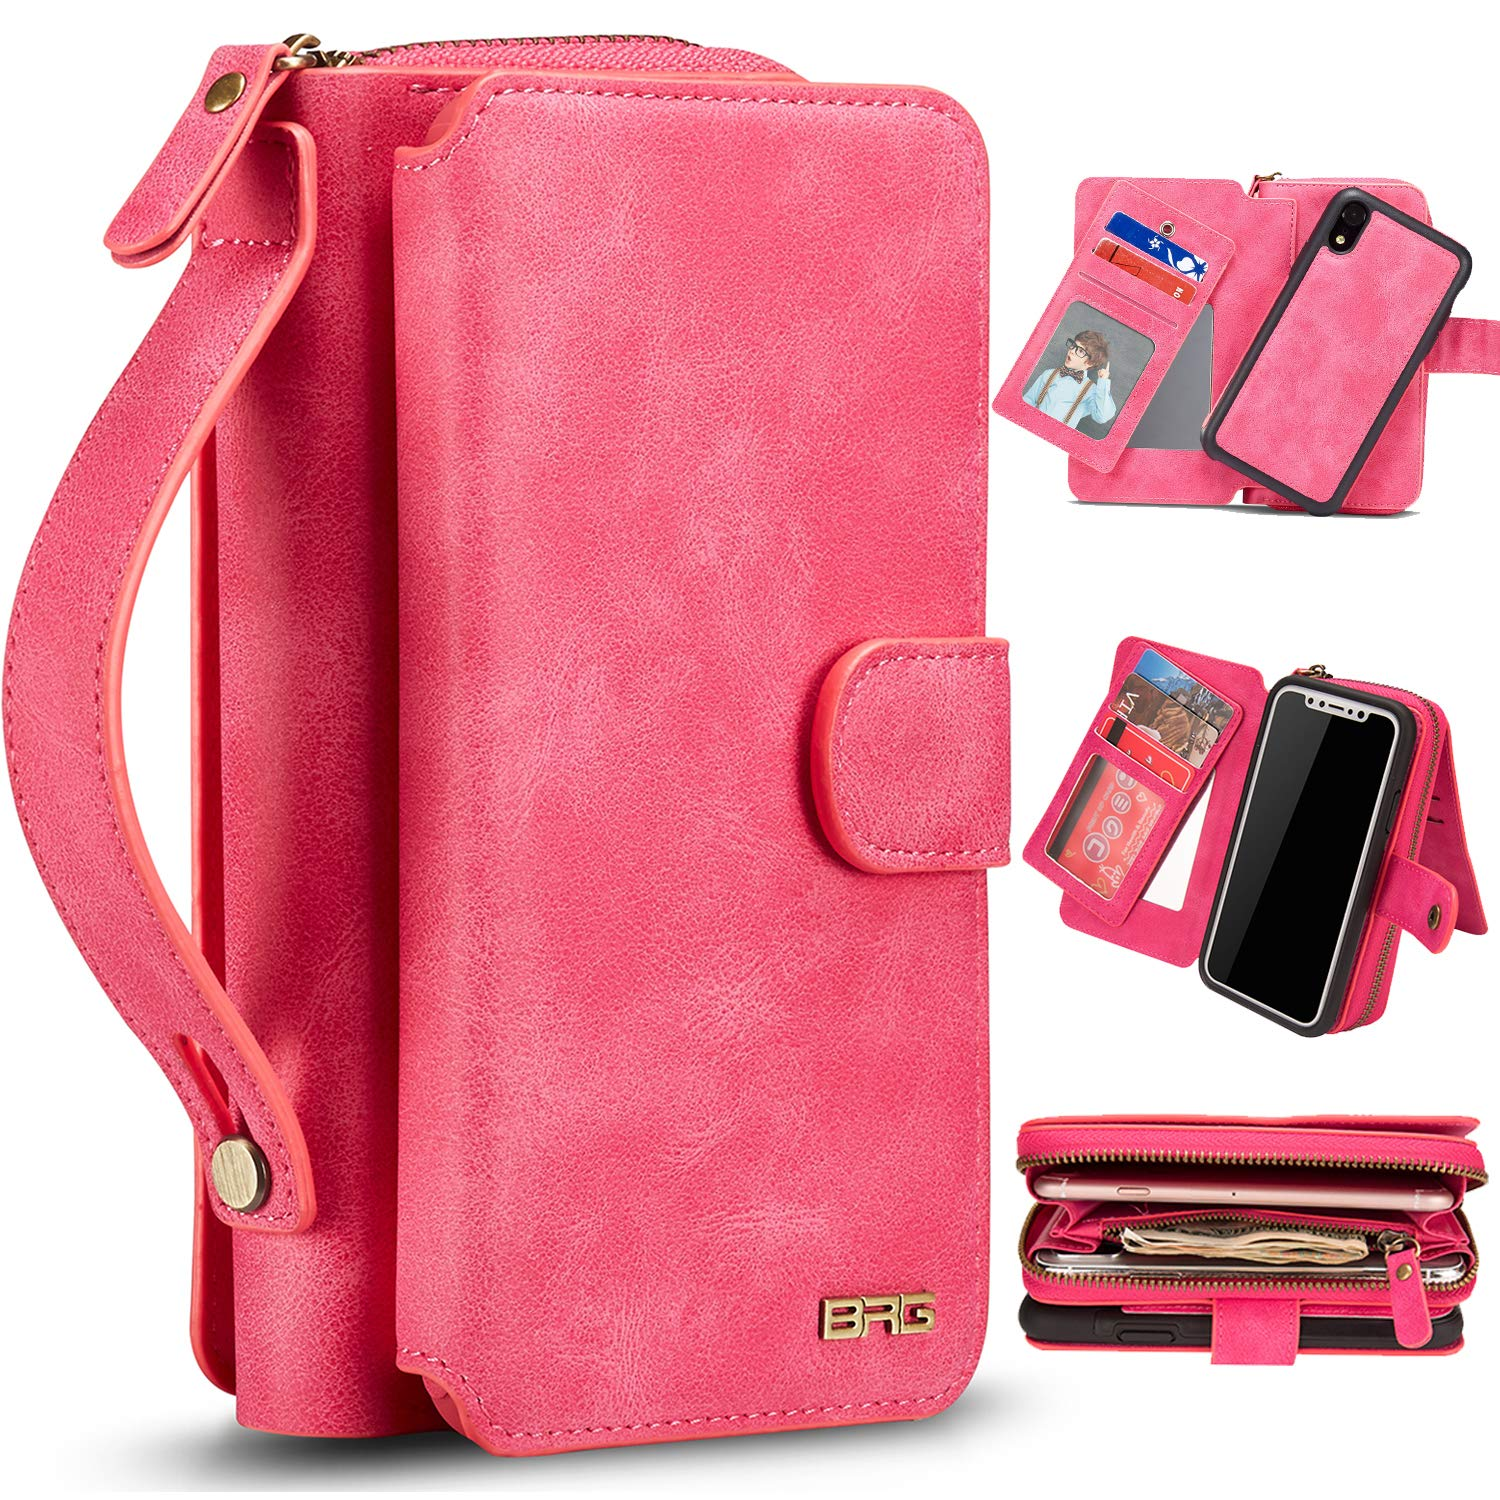 """XRPow Case for iPhone XR [2 in 1] Wallet Case Magnetic Detachable Cover Zipper Purse Clutch [Vegan Leather] iPhone XR Flip Case (6.1"""") with [11 Card Holder] [Mirror] - Hot Pink"""